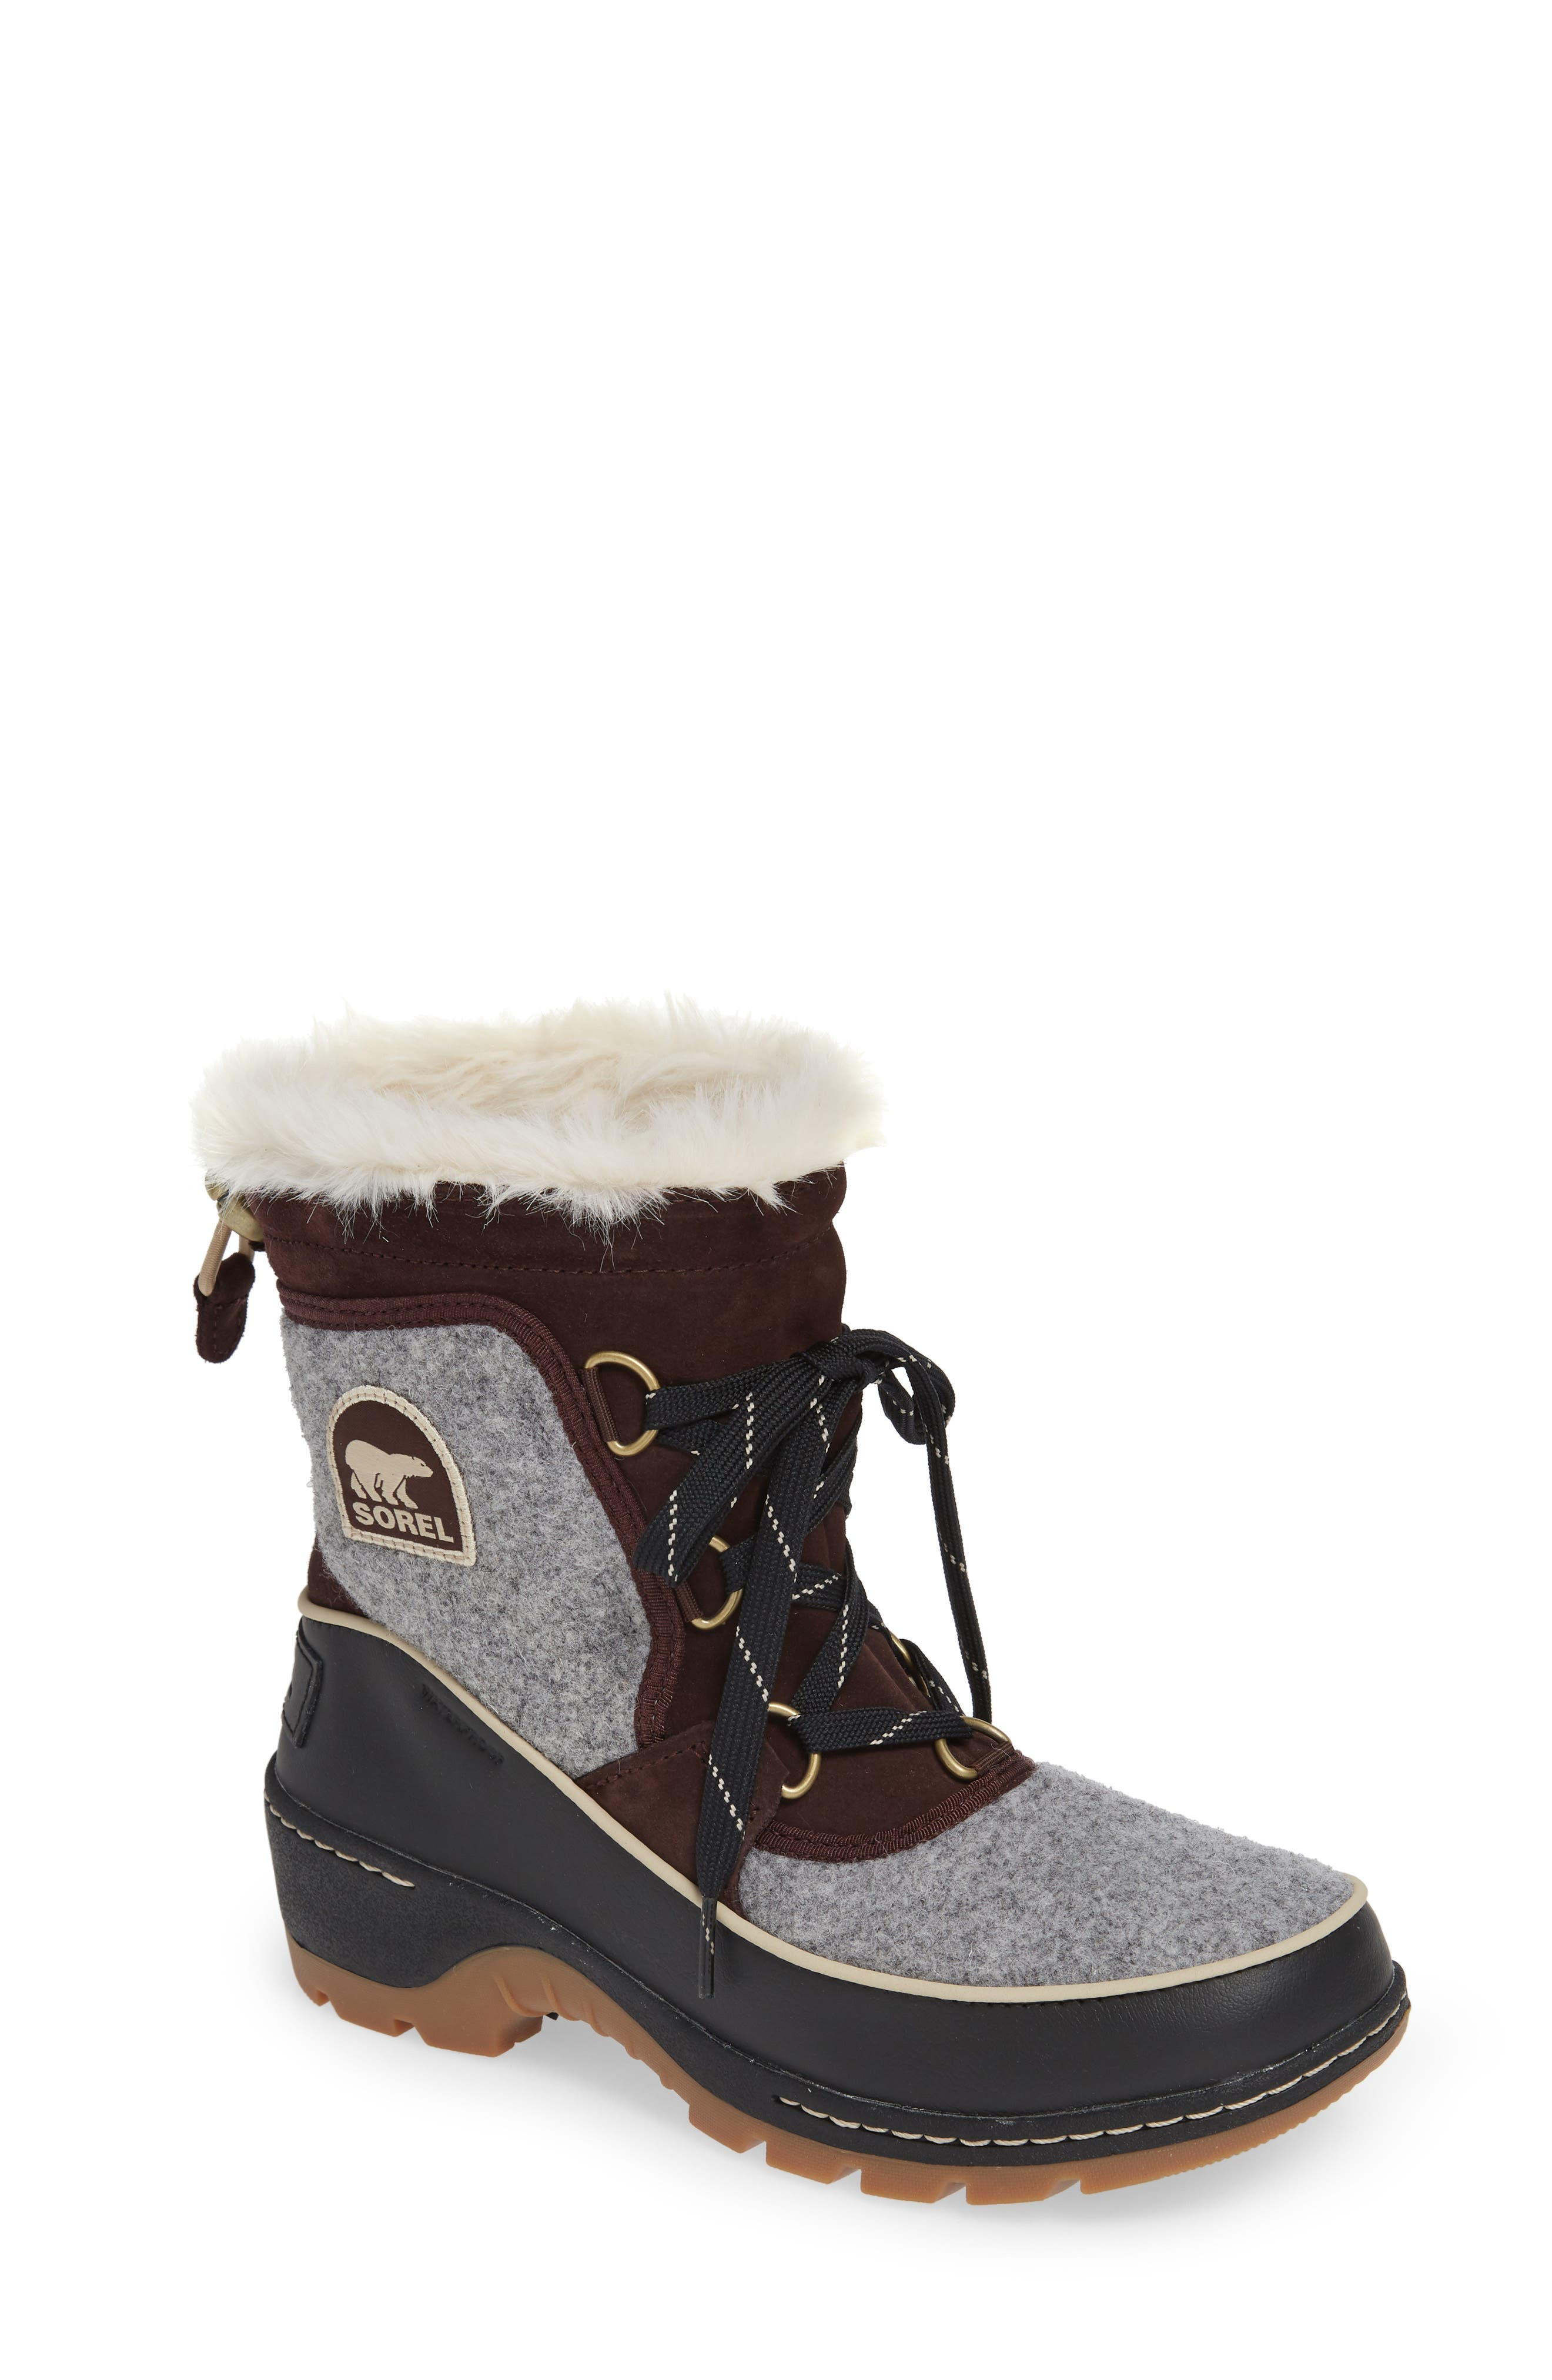 Tivoli Iii Waterproof Lace-Up Winter Boots With Faux Fur in Cattail/ Quarry